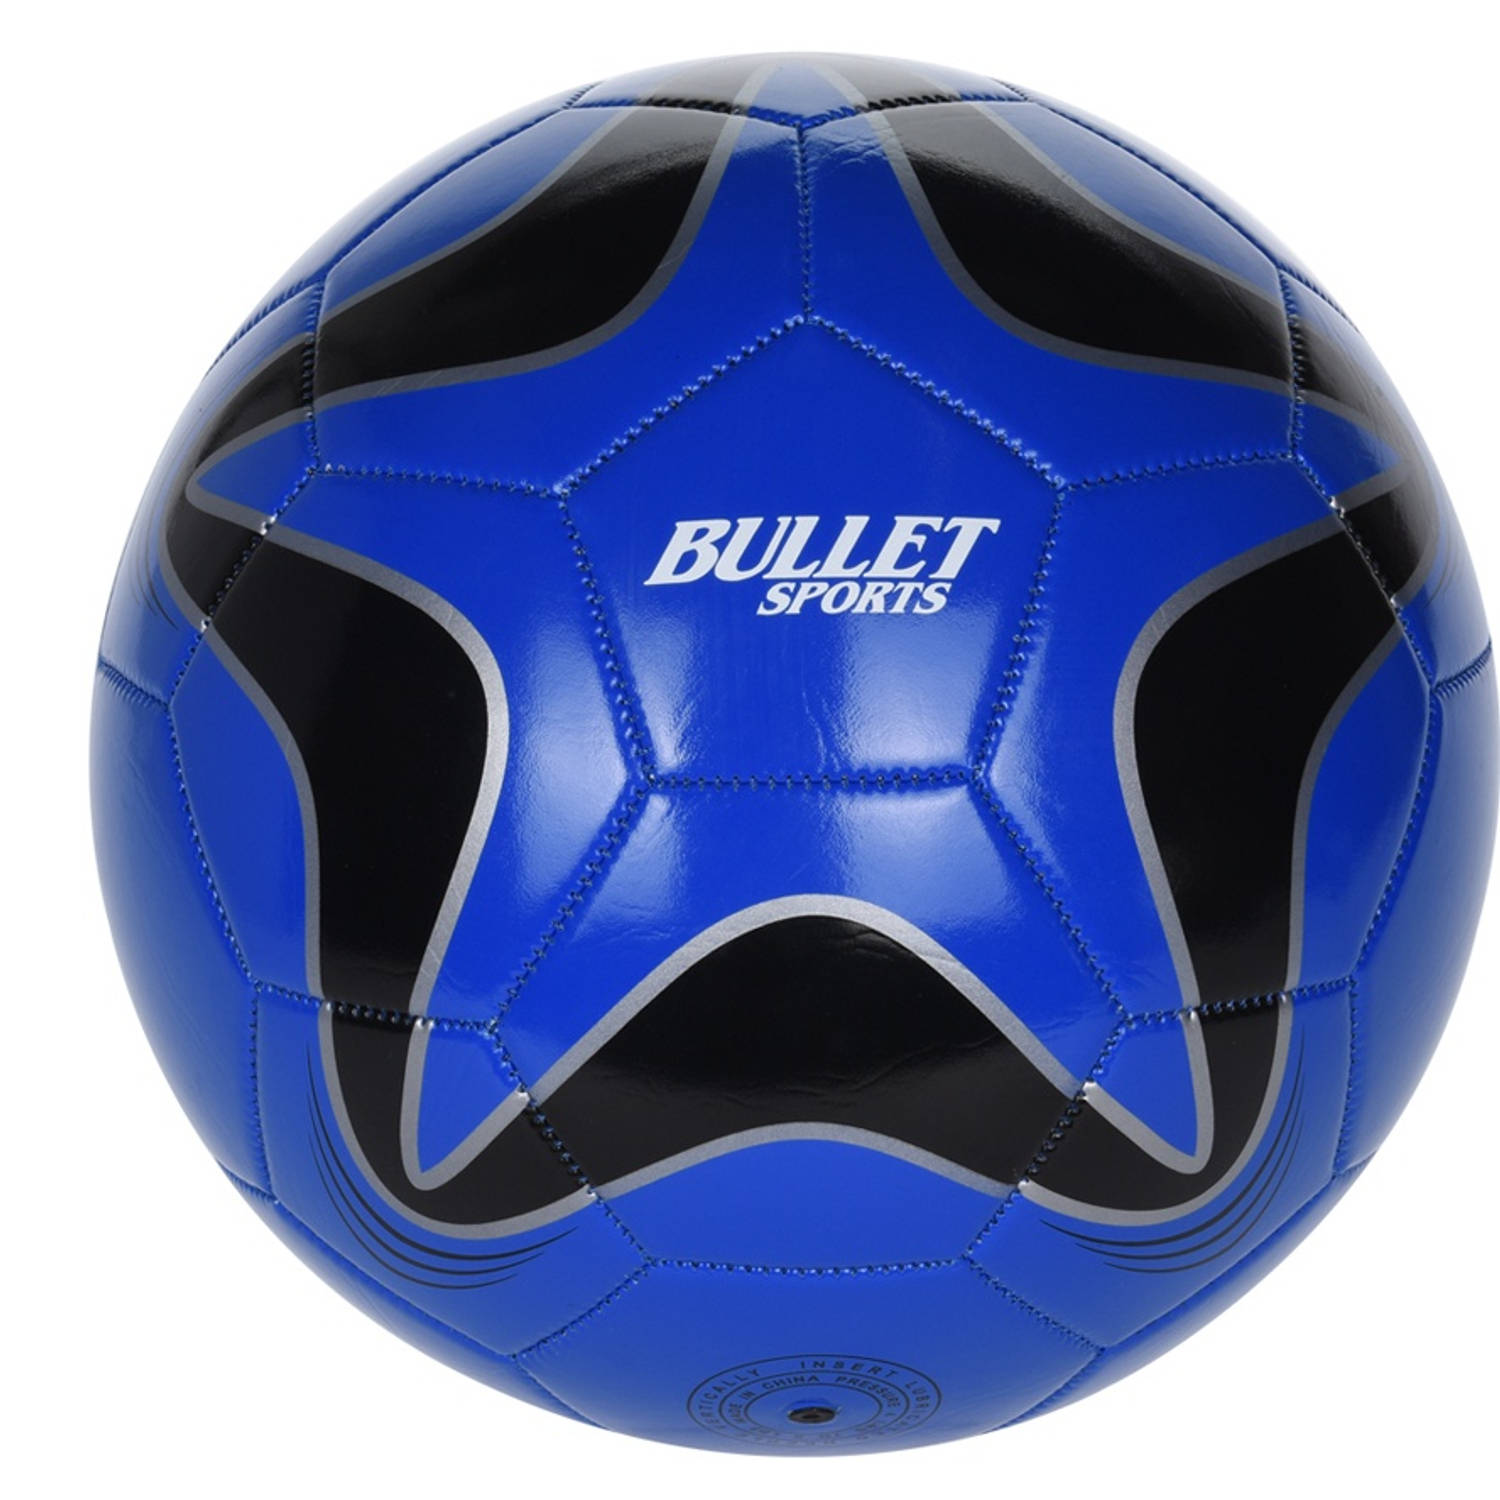 Free and Easy Bullet Sports voetbal maat 5 blauw